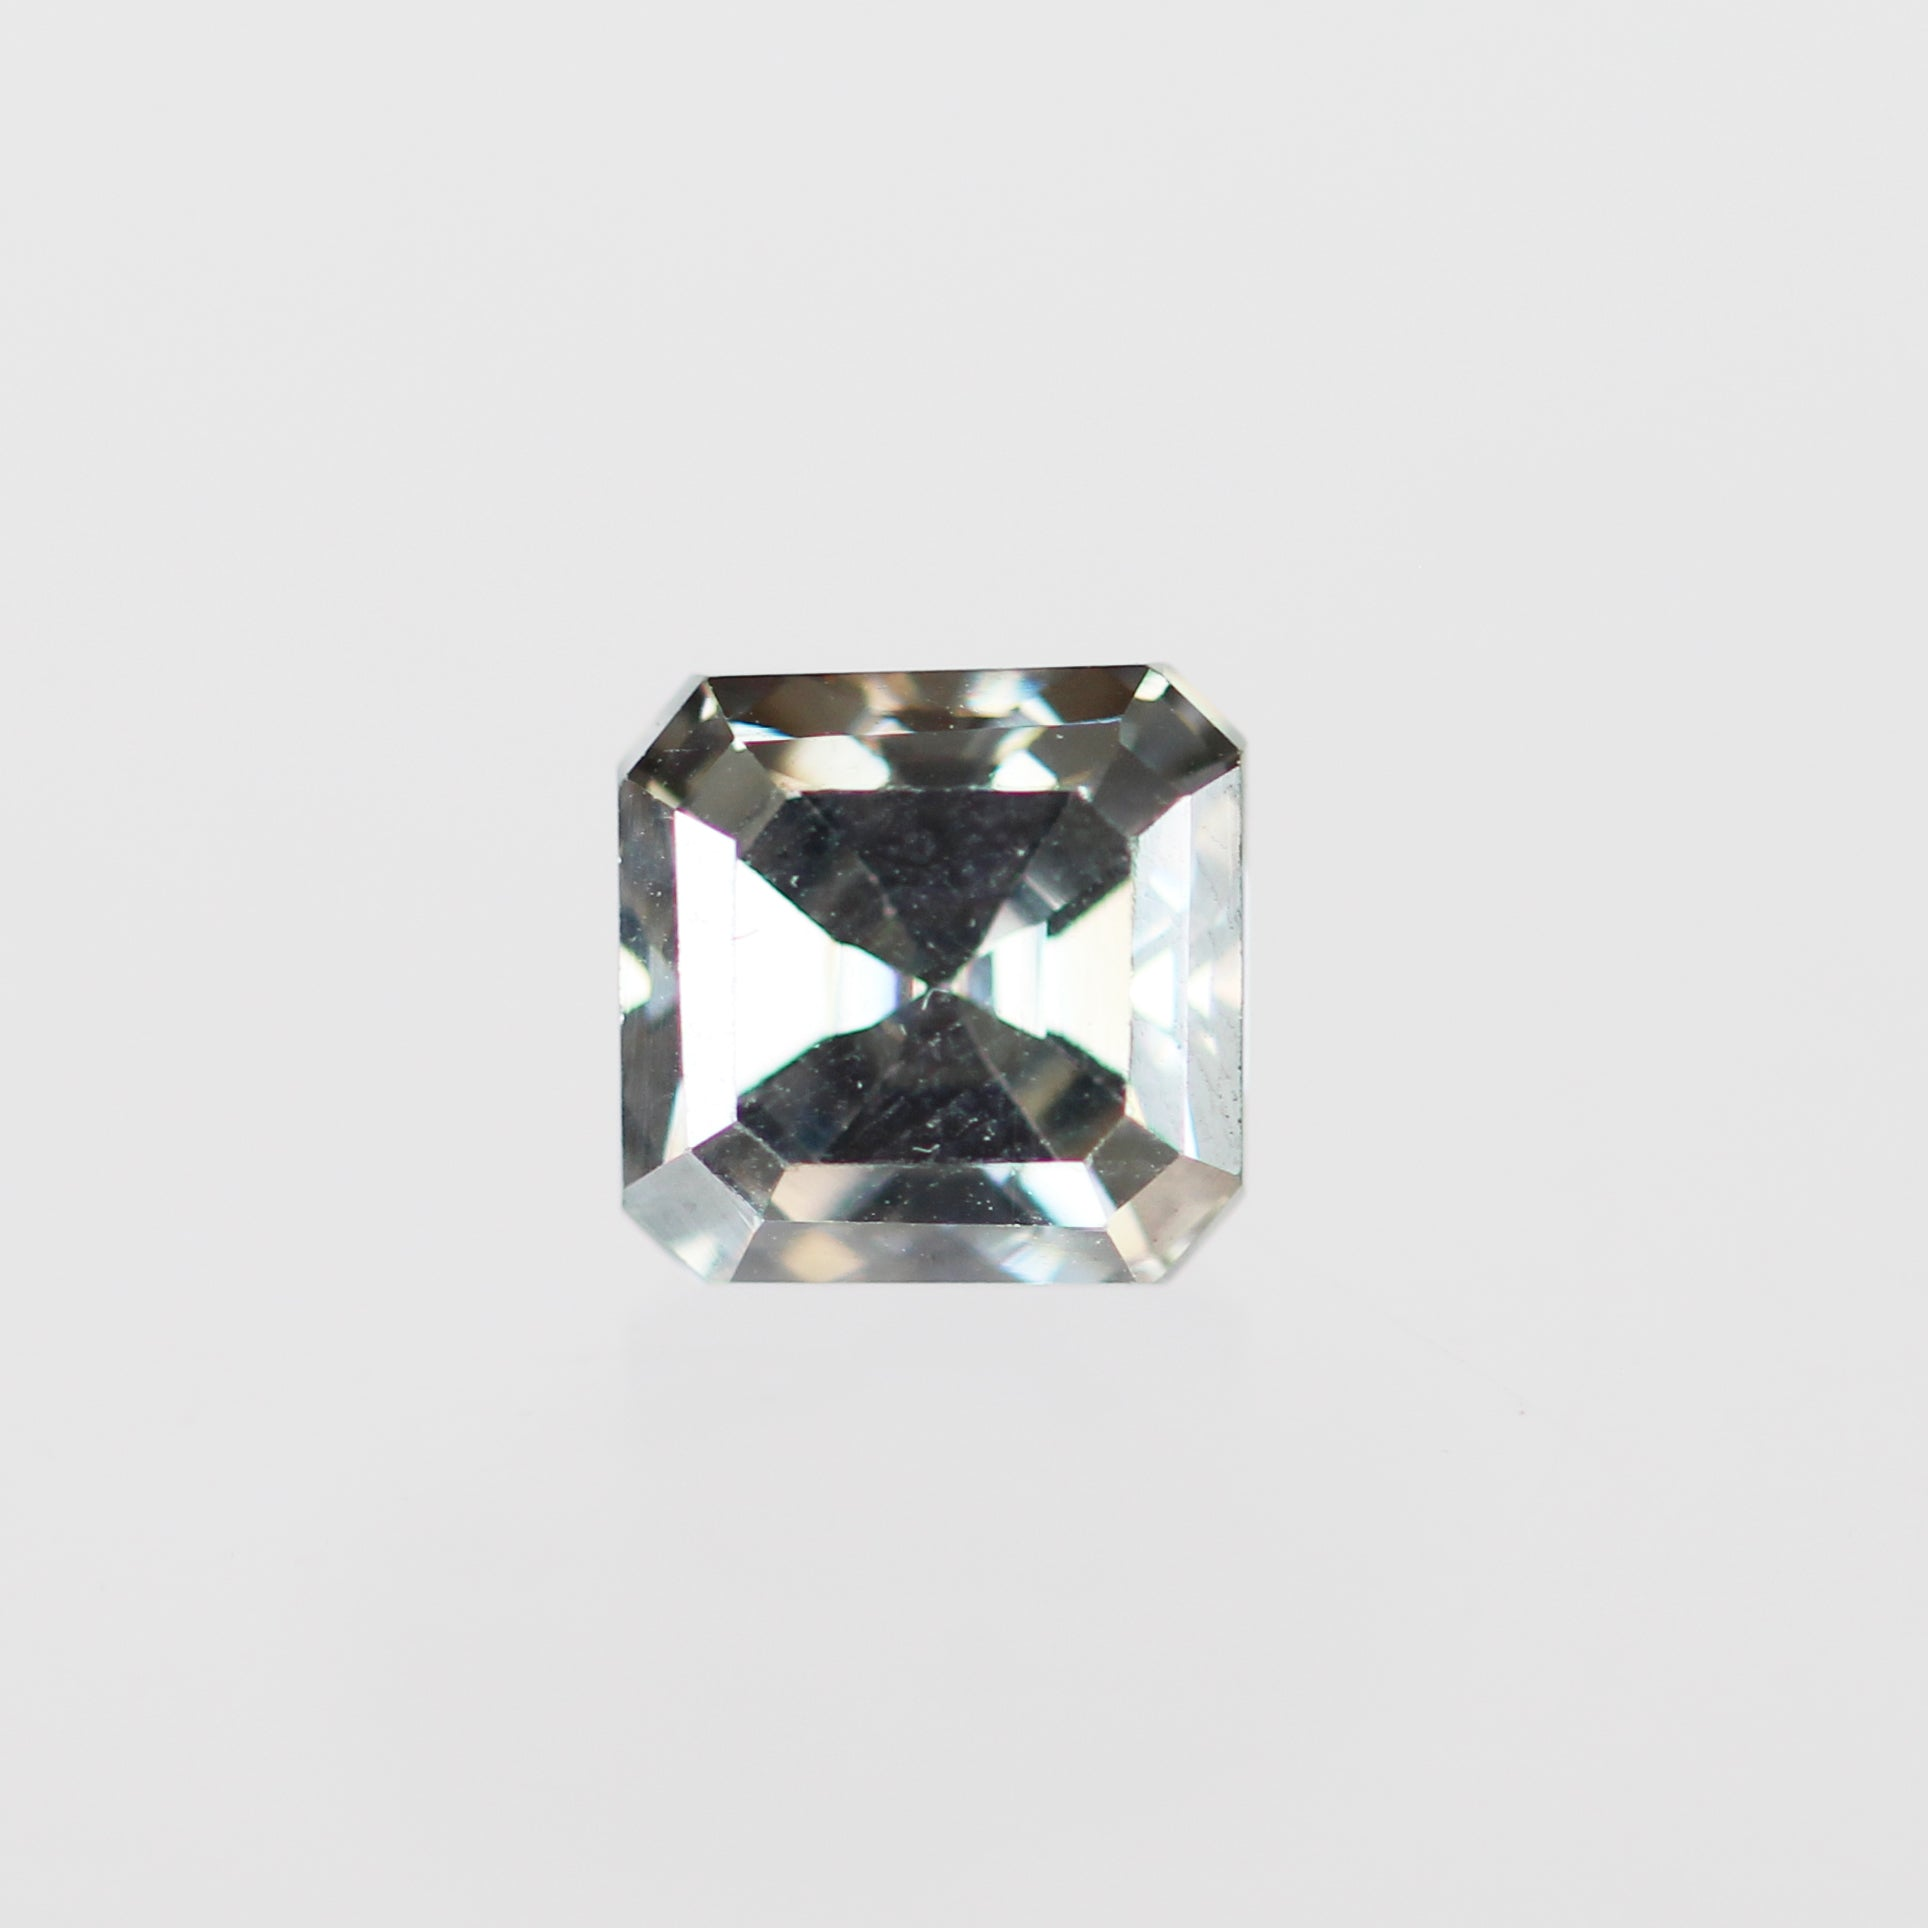 1.64 Carat Asscher Moissanite for Custom Work - Inventory Code ABMOI164 - Salt & Pepper Celestial Diamond Engagement Rings and Wedding Bands  by Midwinter Co.